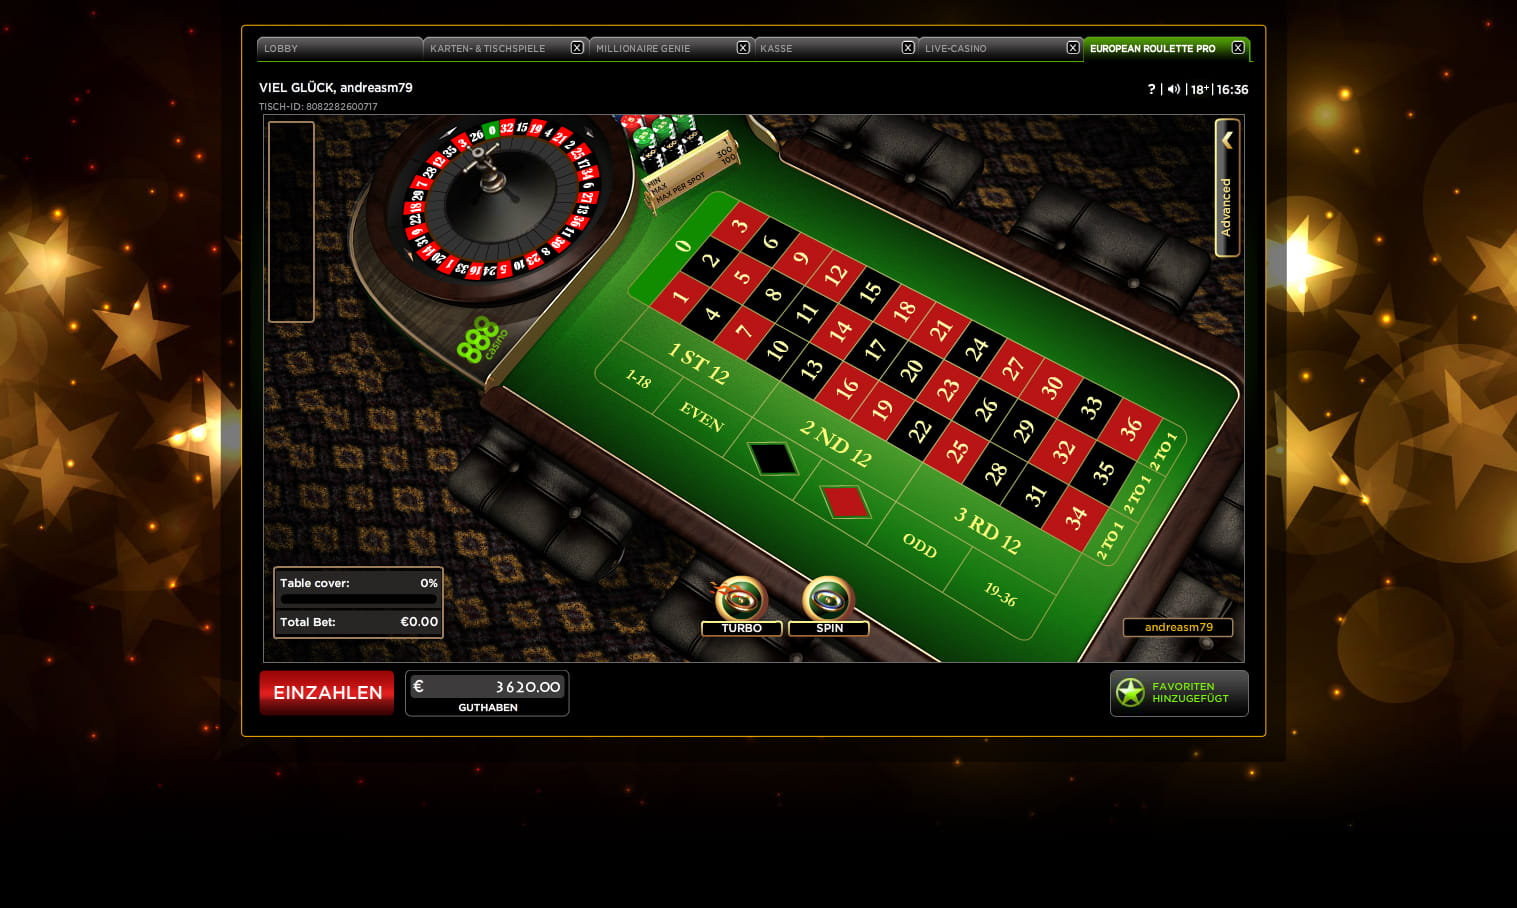 online casino video poker chat spiele online